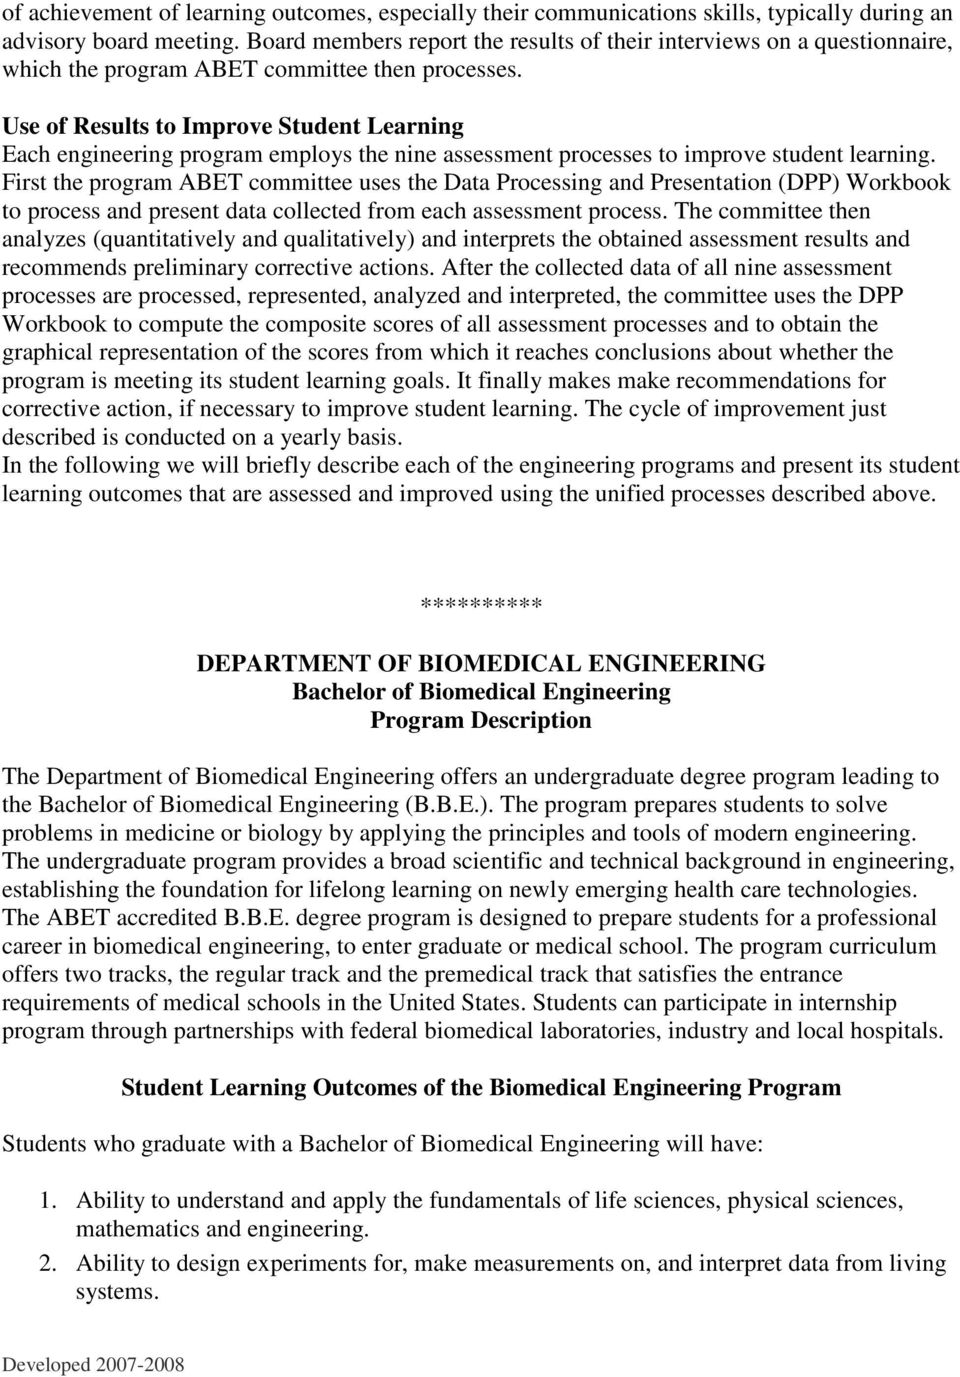 Use of Results to Improve Student Learning Each engineering program employs the nine assessment processes to improve student learning.